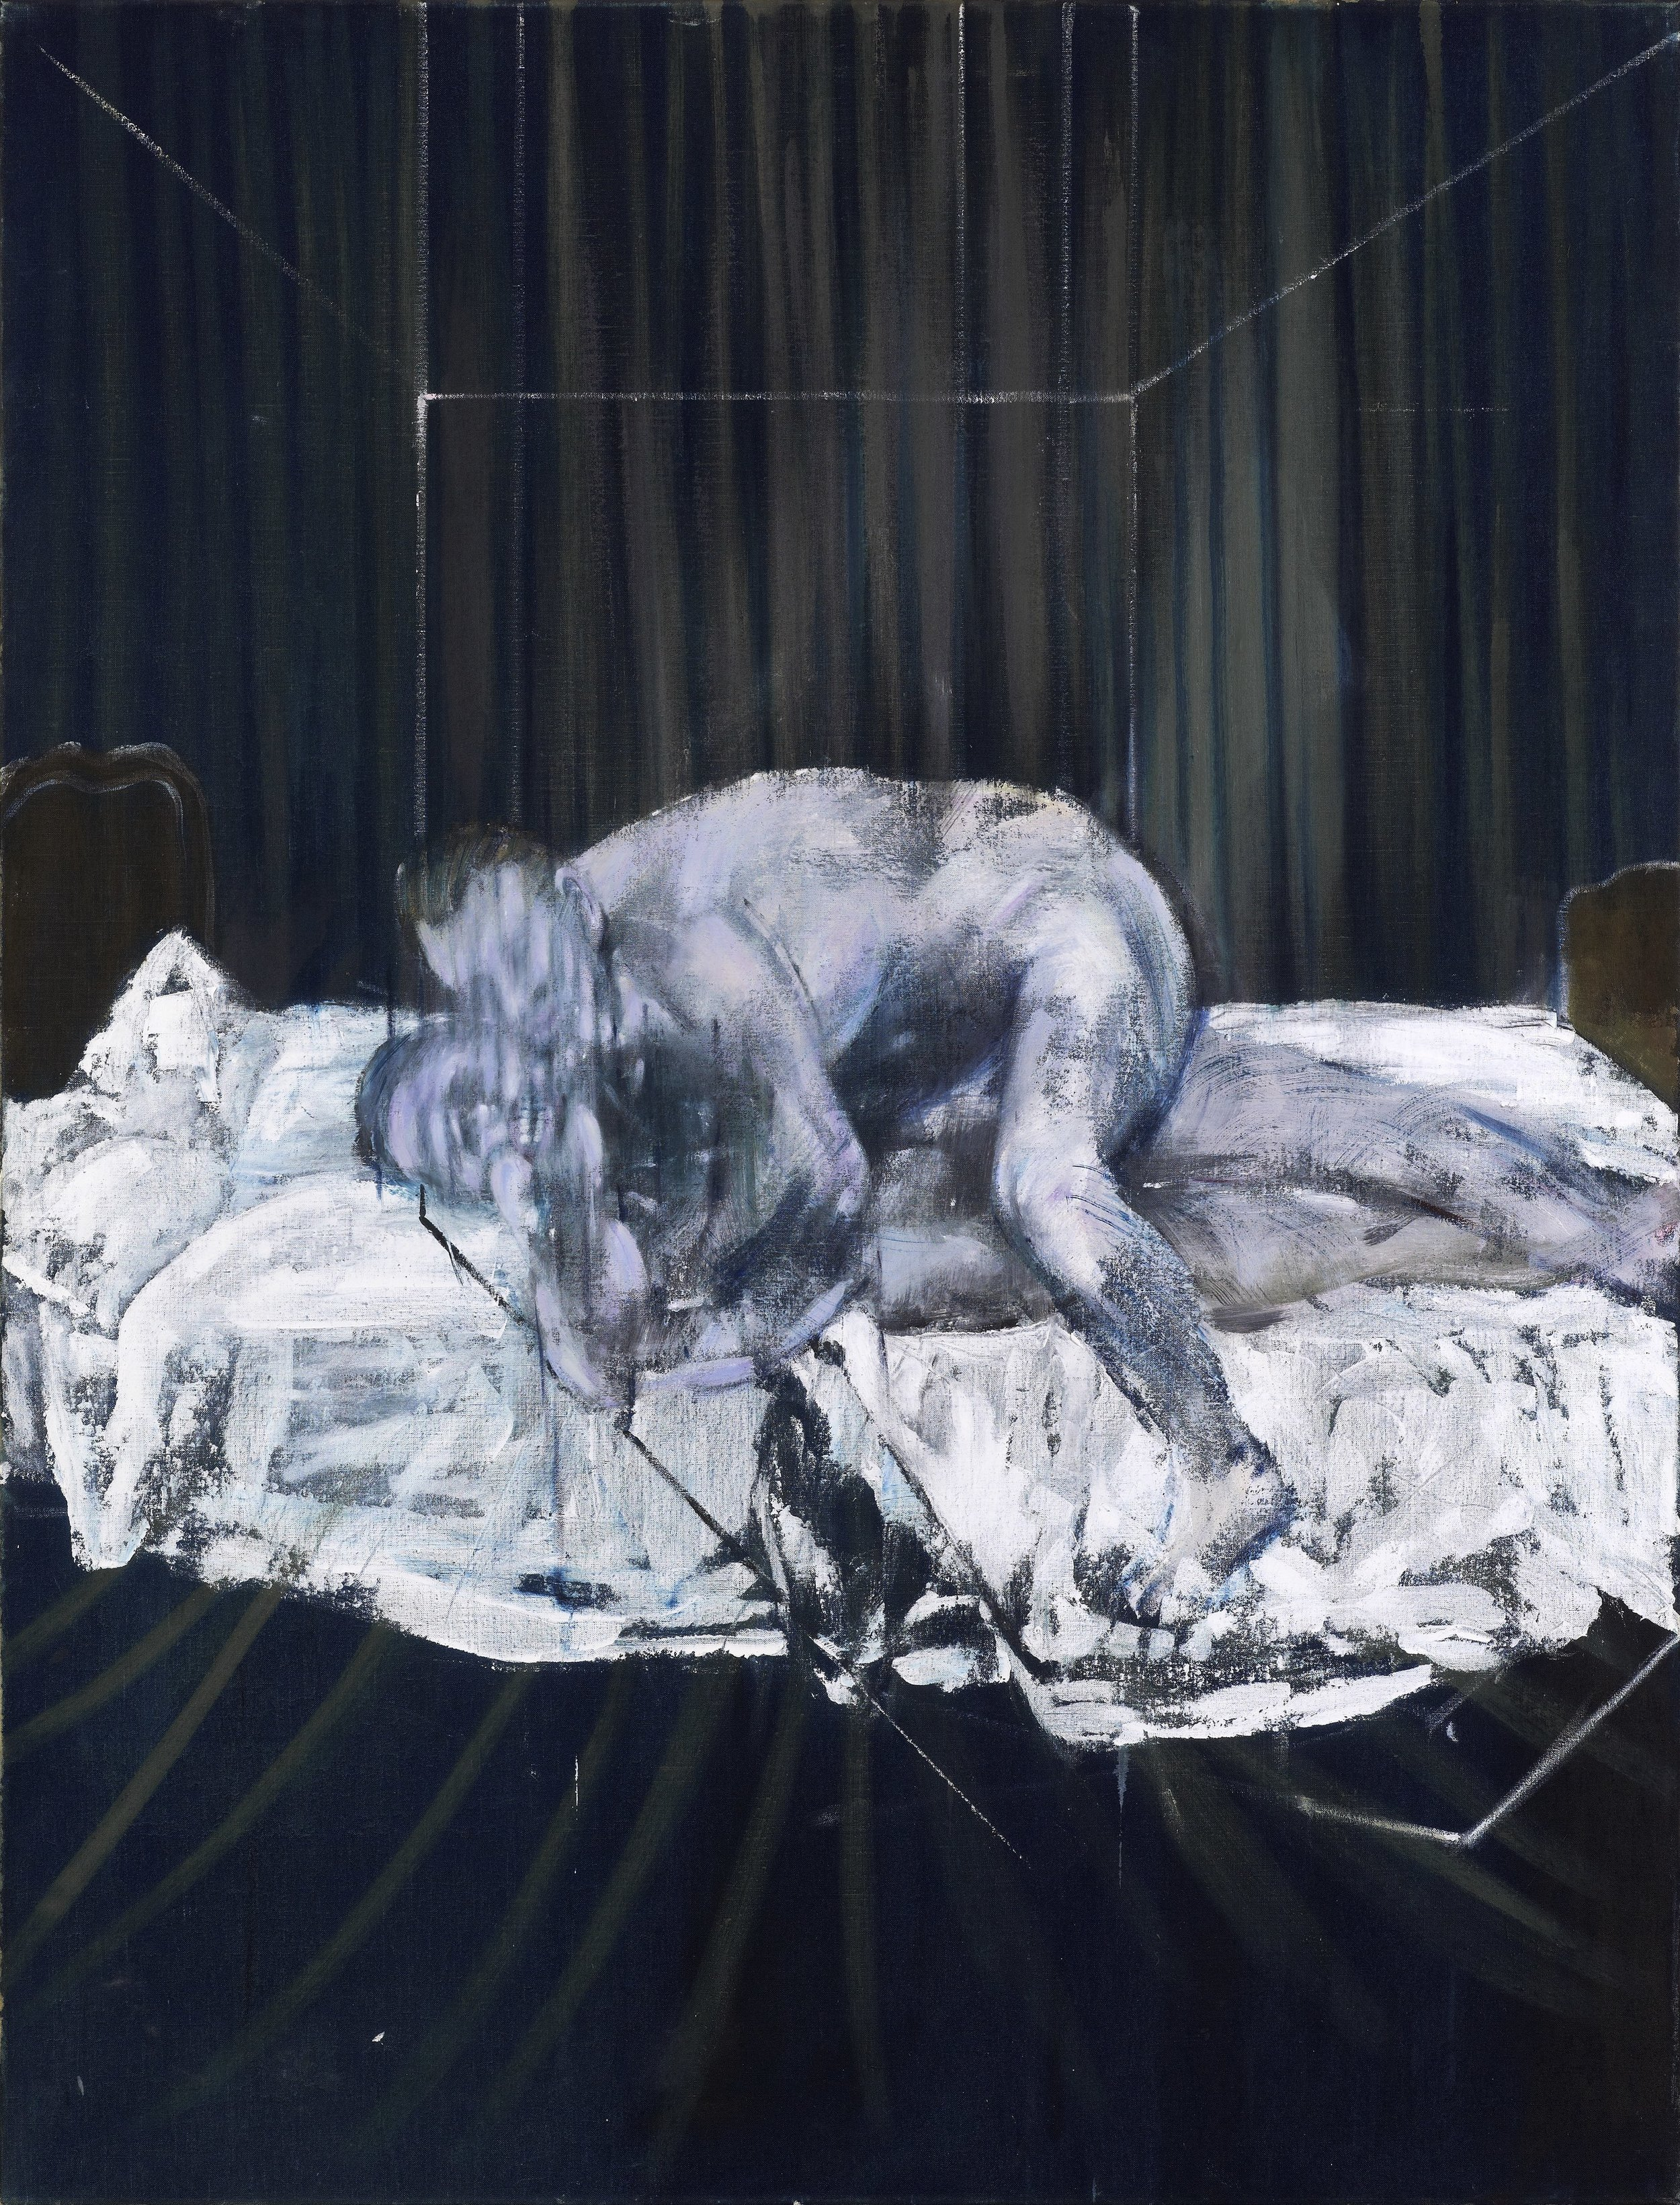 Francis Bacon.  Two Figures , 1953. Oil on canvas. 152.5 x 116.5 cm. © The Estate of Francis Bacon. All rights reserved, DACS/Artimage 2019. Photo: Prudence Cuming Associates Ltd. Courtesy Gagosian